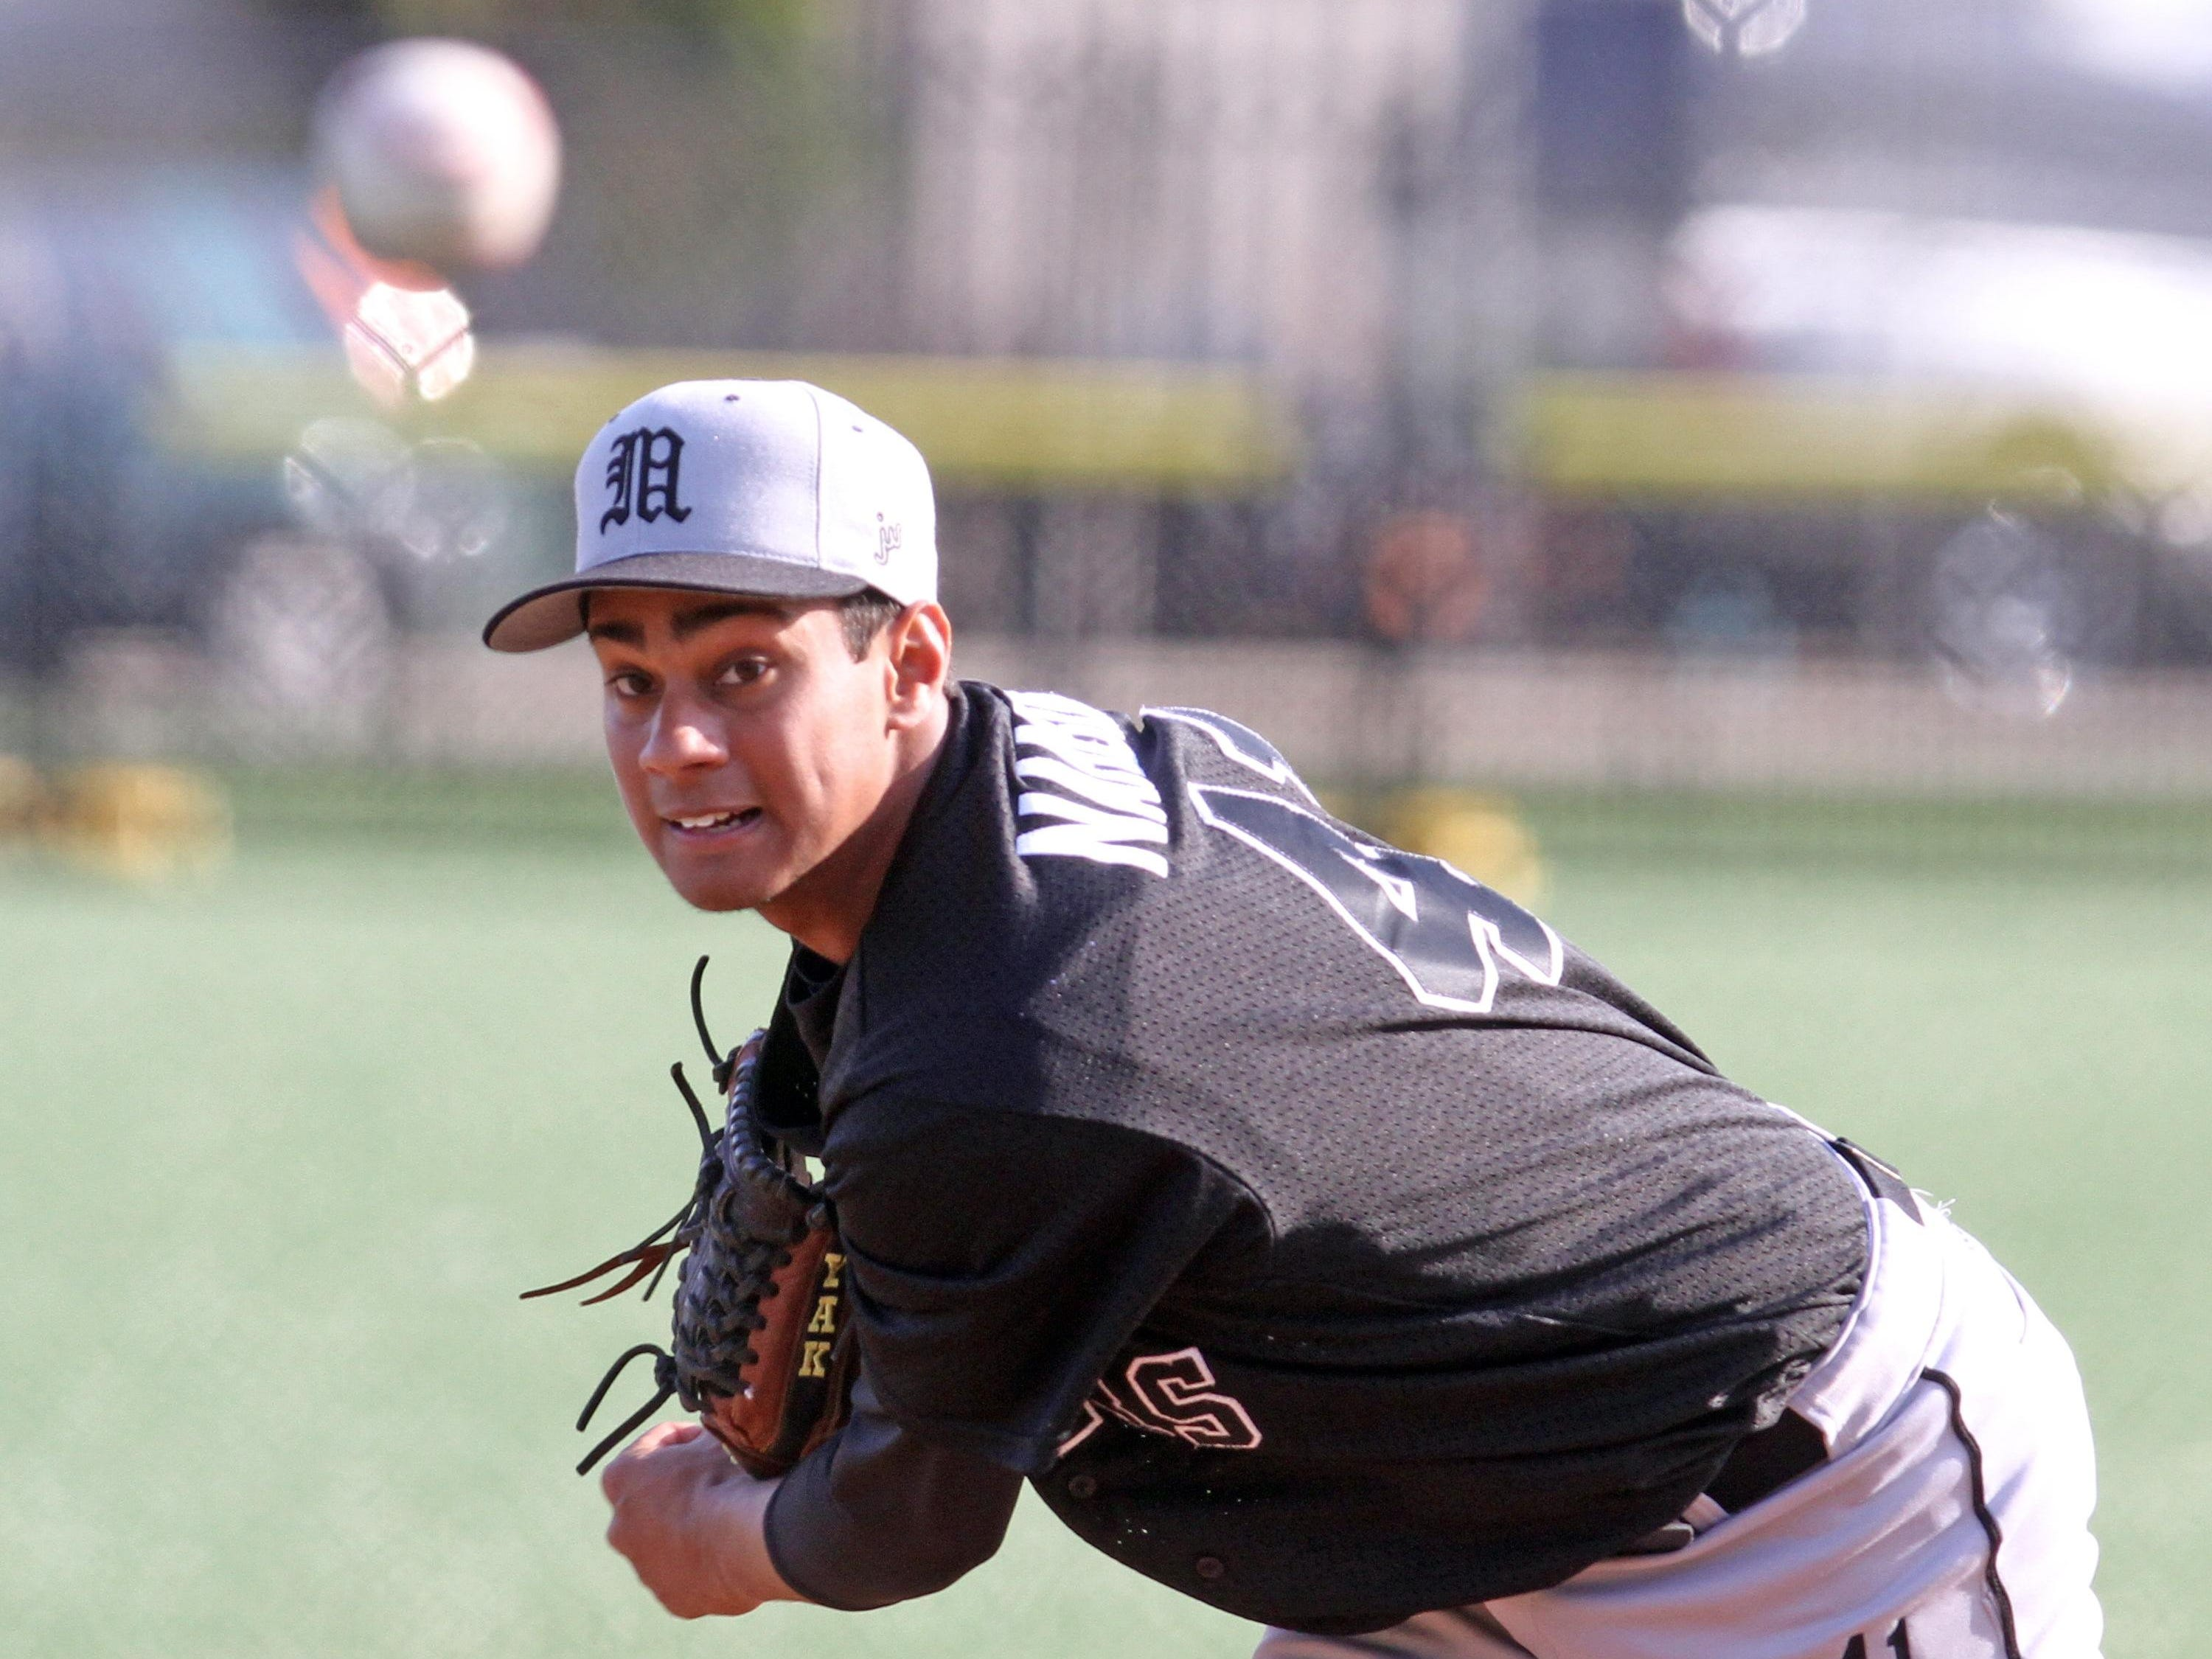 Mamaroneck's Kumar Nambiar was named New York State Class AA baseball player of the year Tuesday, July 14, 2015.